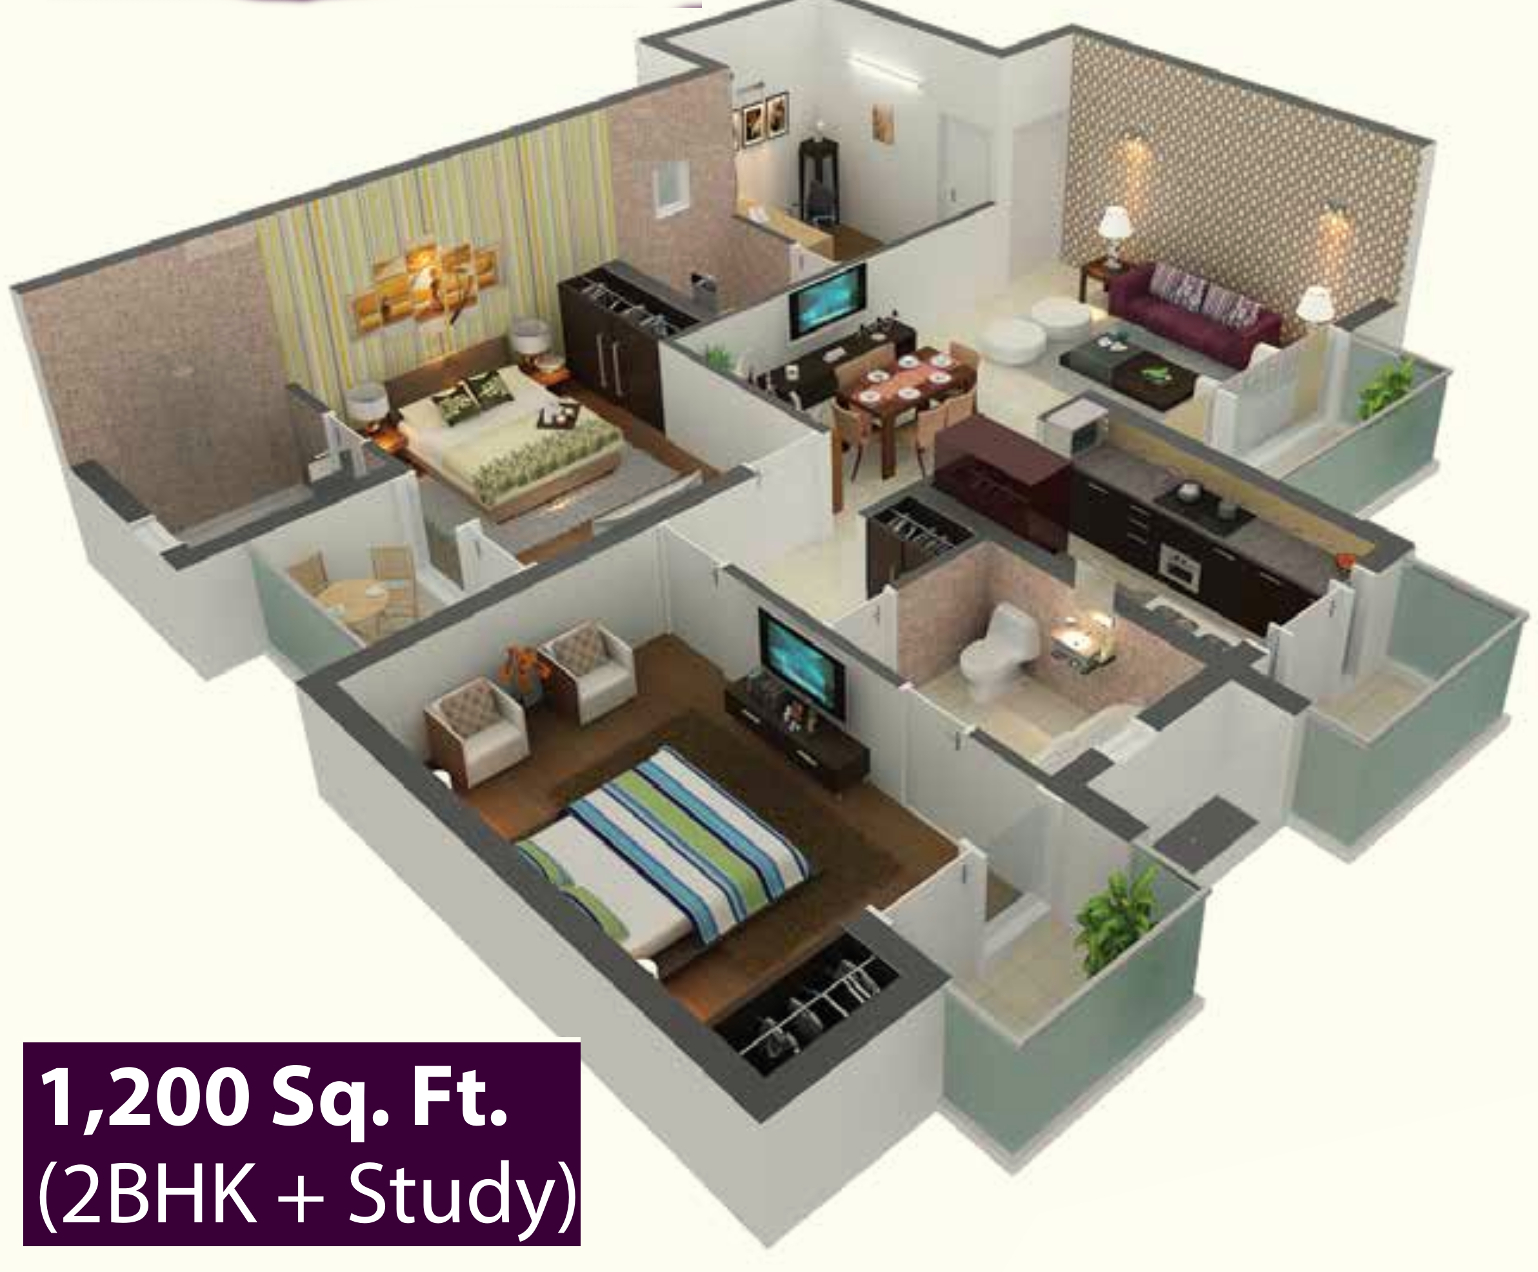 House Blueprint Maker Everyone Will Like Homes In Kerala India: house blueprint maker